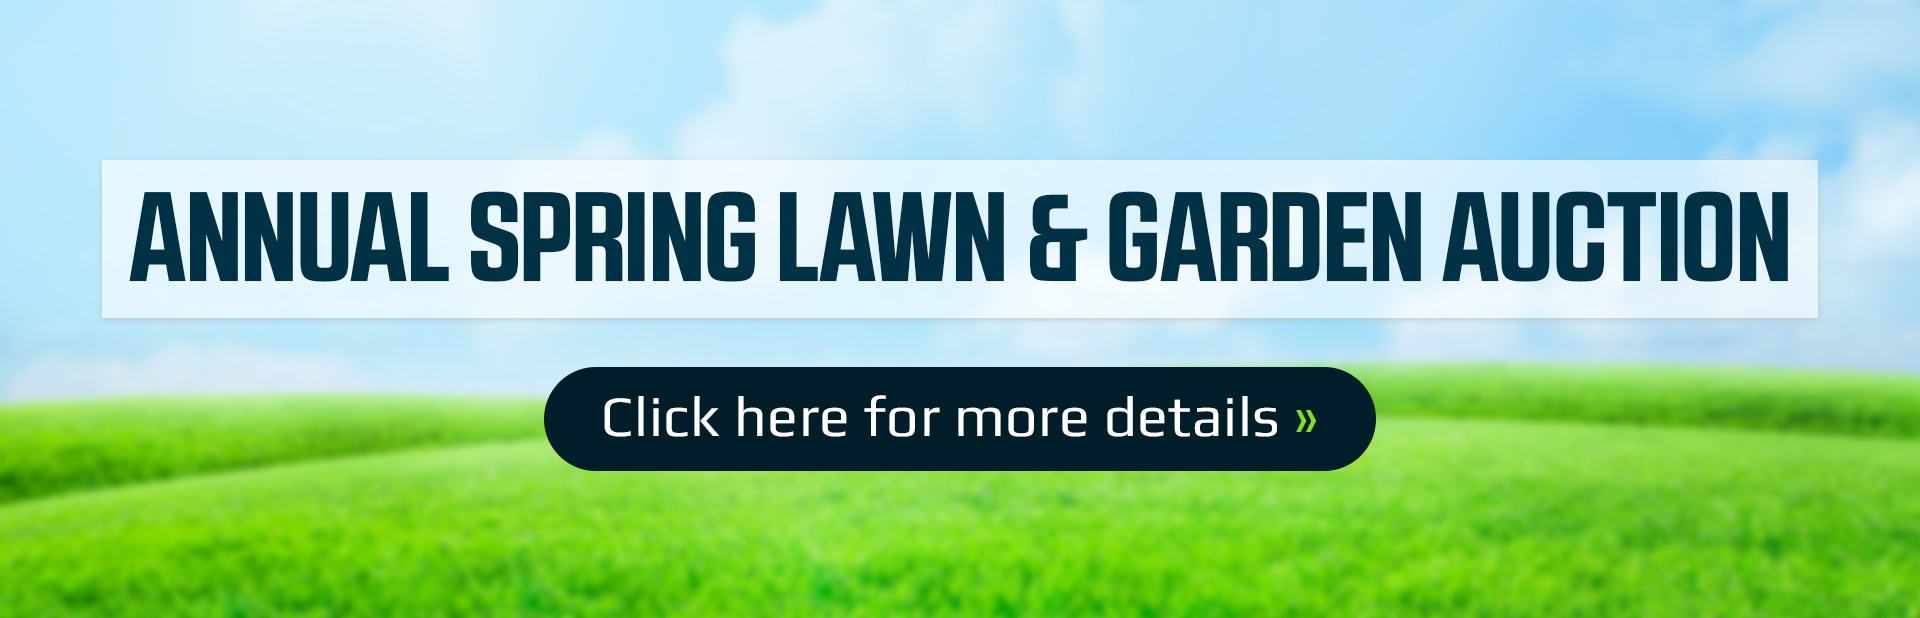 Annual Spring Lawn & Garden Auction: Click here for details!